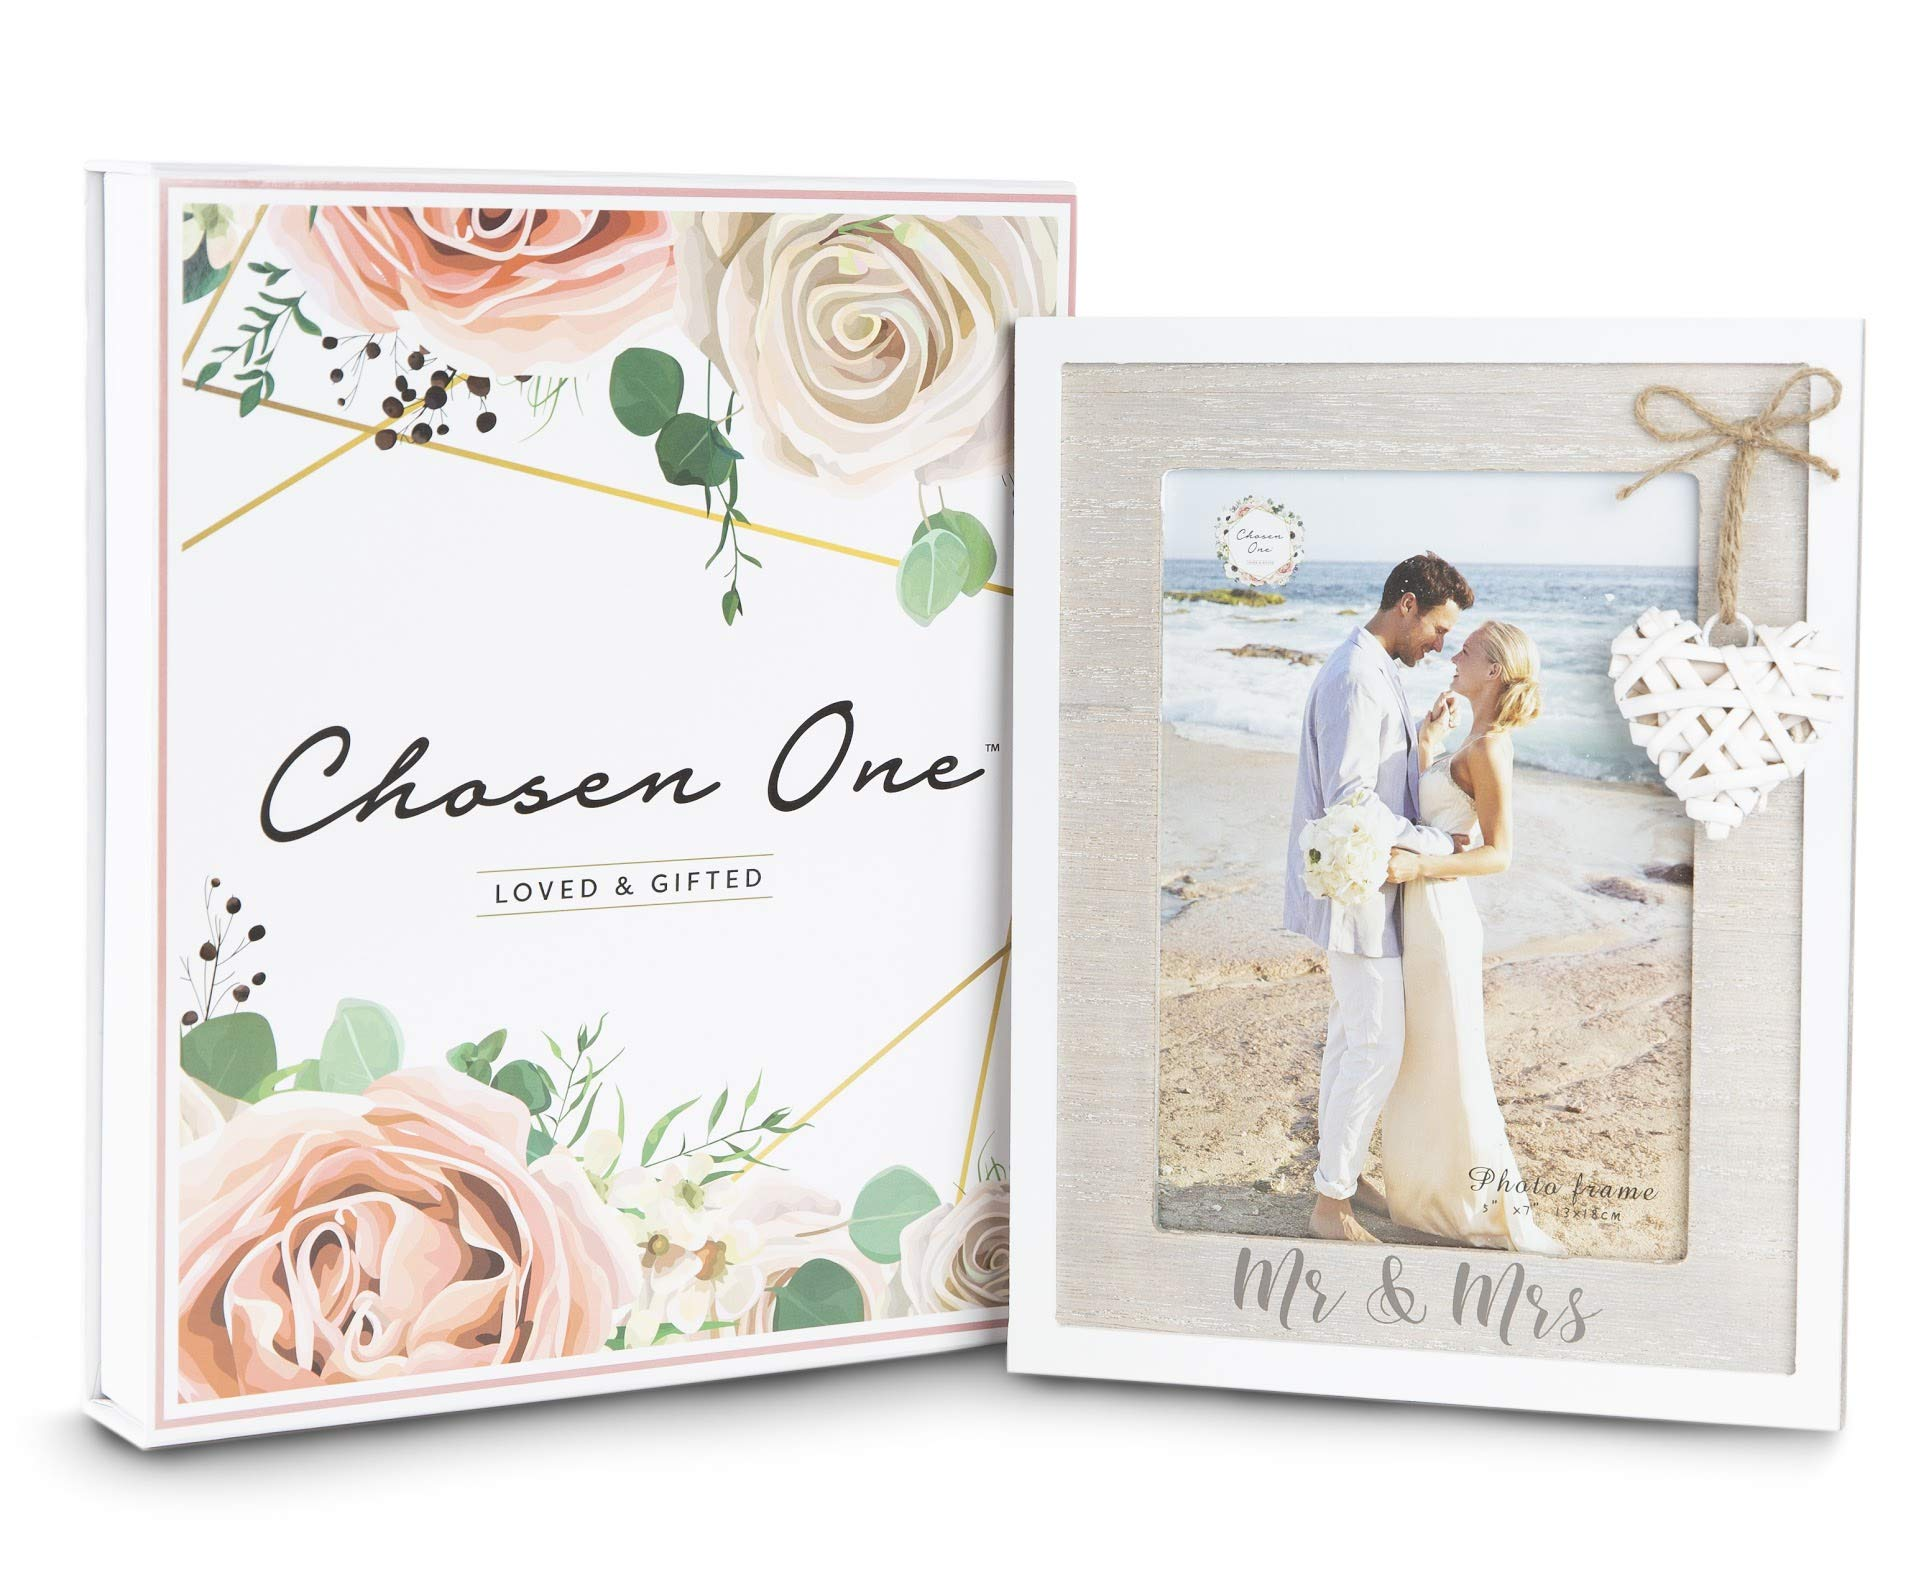 Mr & Mrs 5x7 Picture Frame by Chosen One - Rustic White Picture Frames with Heart Accent - Bridal Shower Gifts, Engagement Frame and Wedding Gifts for The Couple - Beach Style Wooden Picture Frame